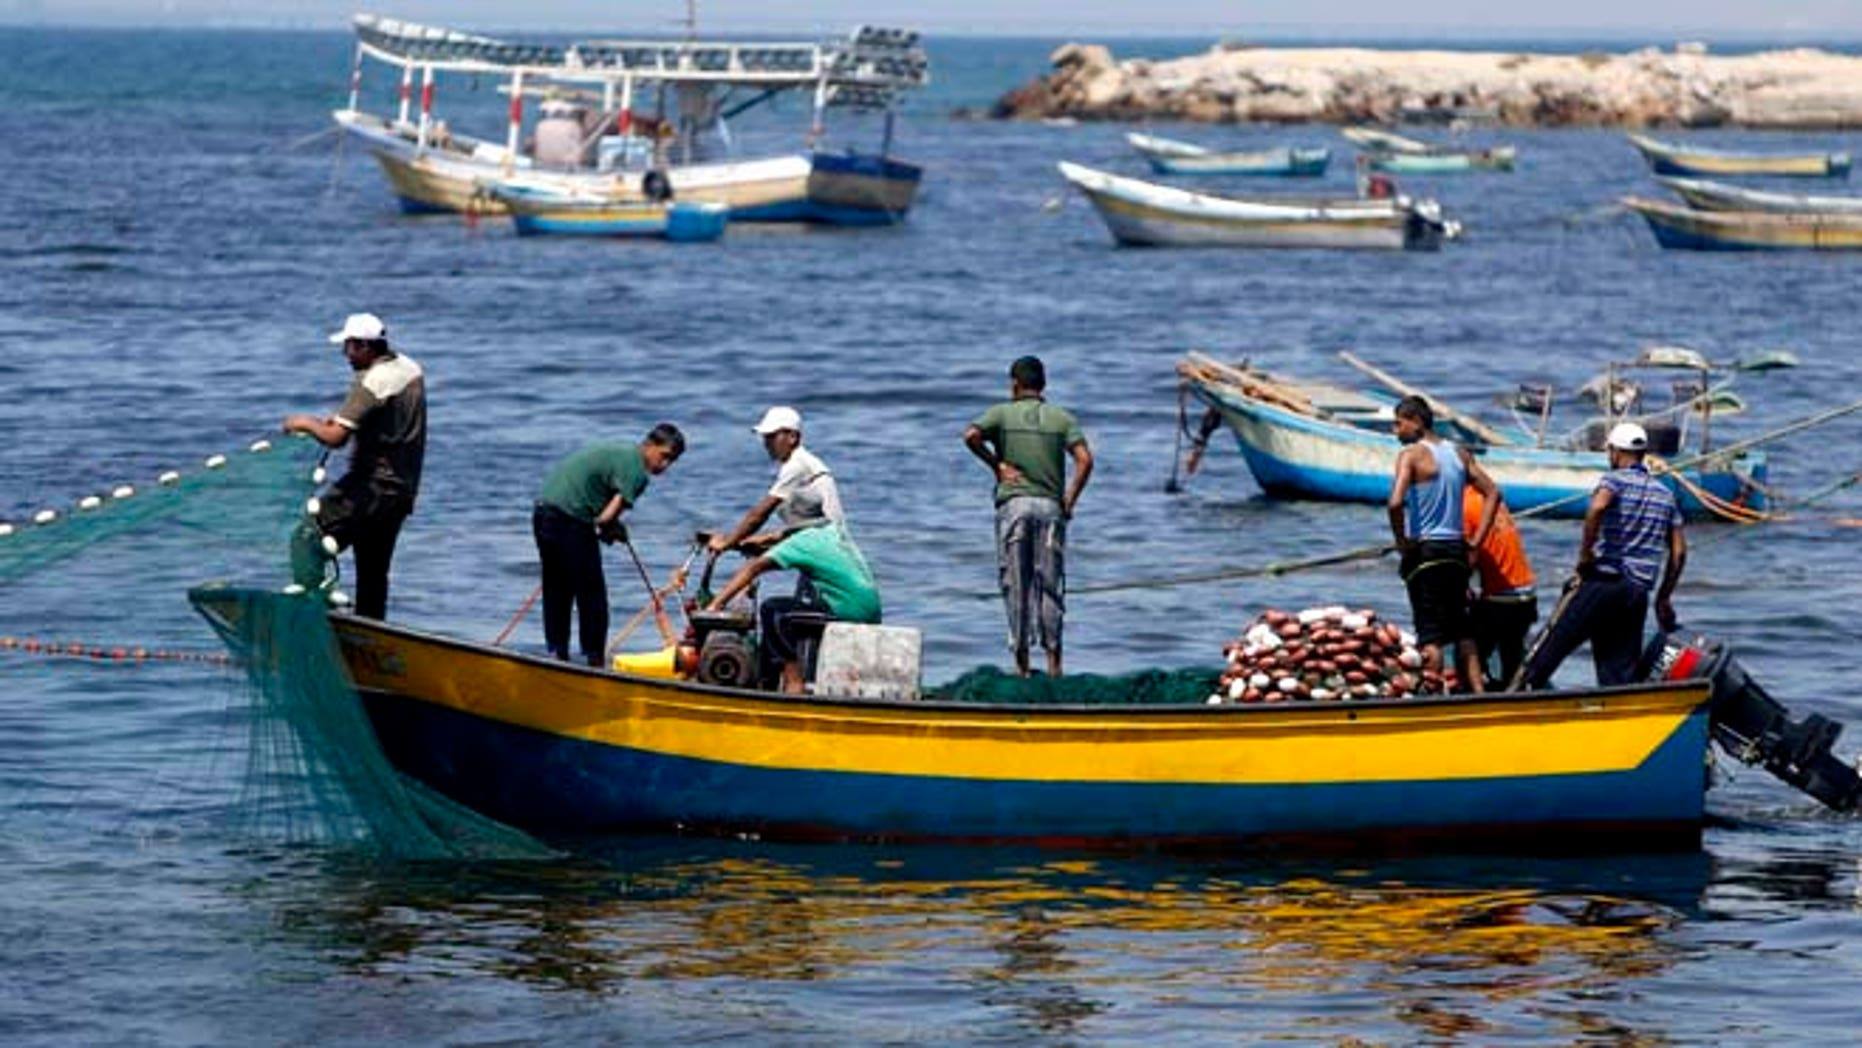 Aug. 7, 2014: In this file photo, Palestinian fishermen clean their fishnets at the fishermen's port in Gaza City. (AP)